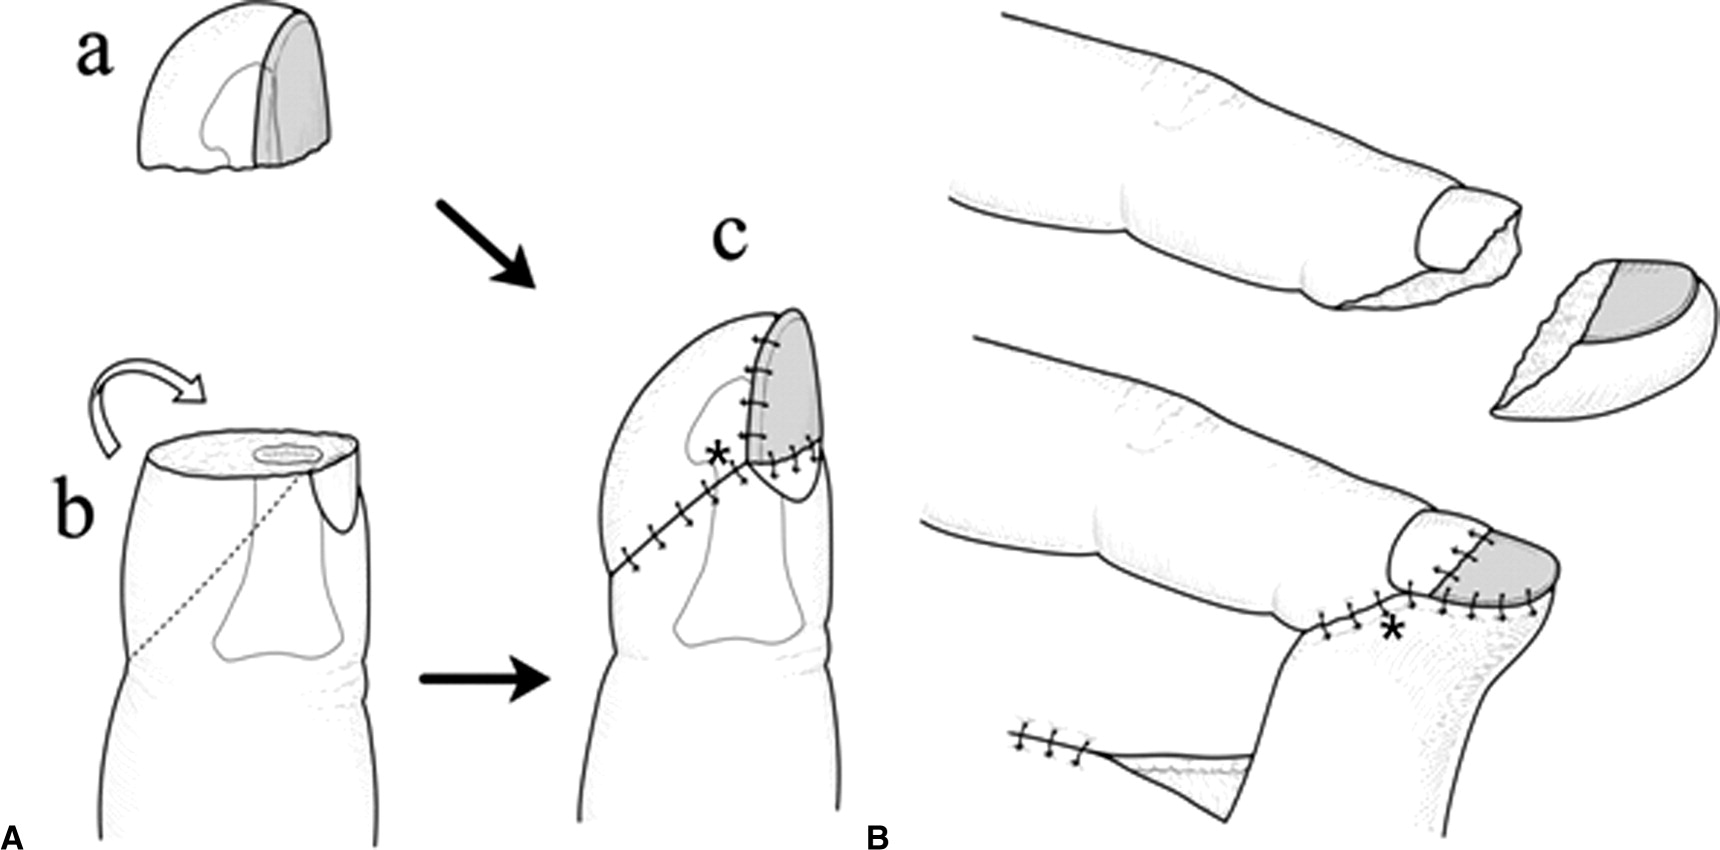 Fingertip Reconstruction With Simultaneous Flaps And Nail